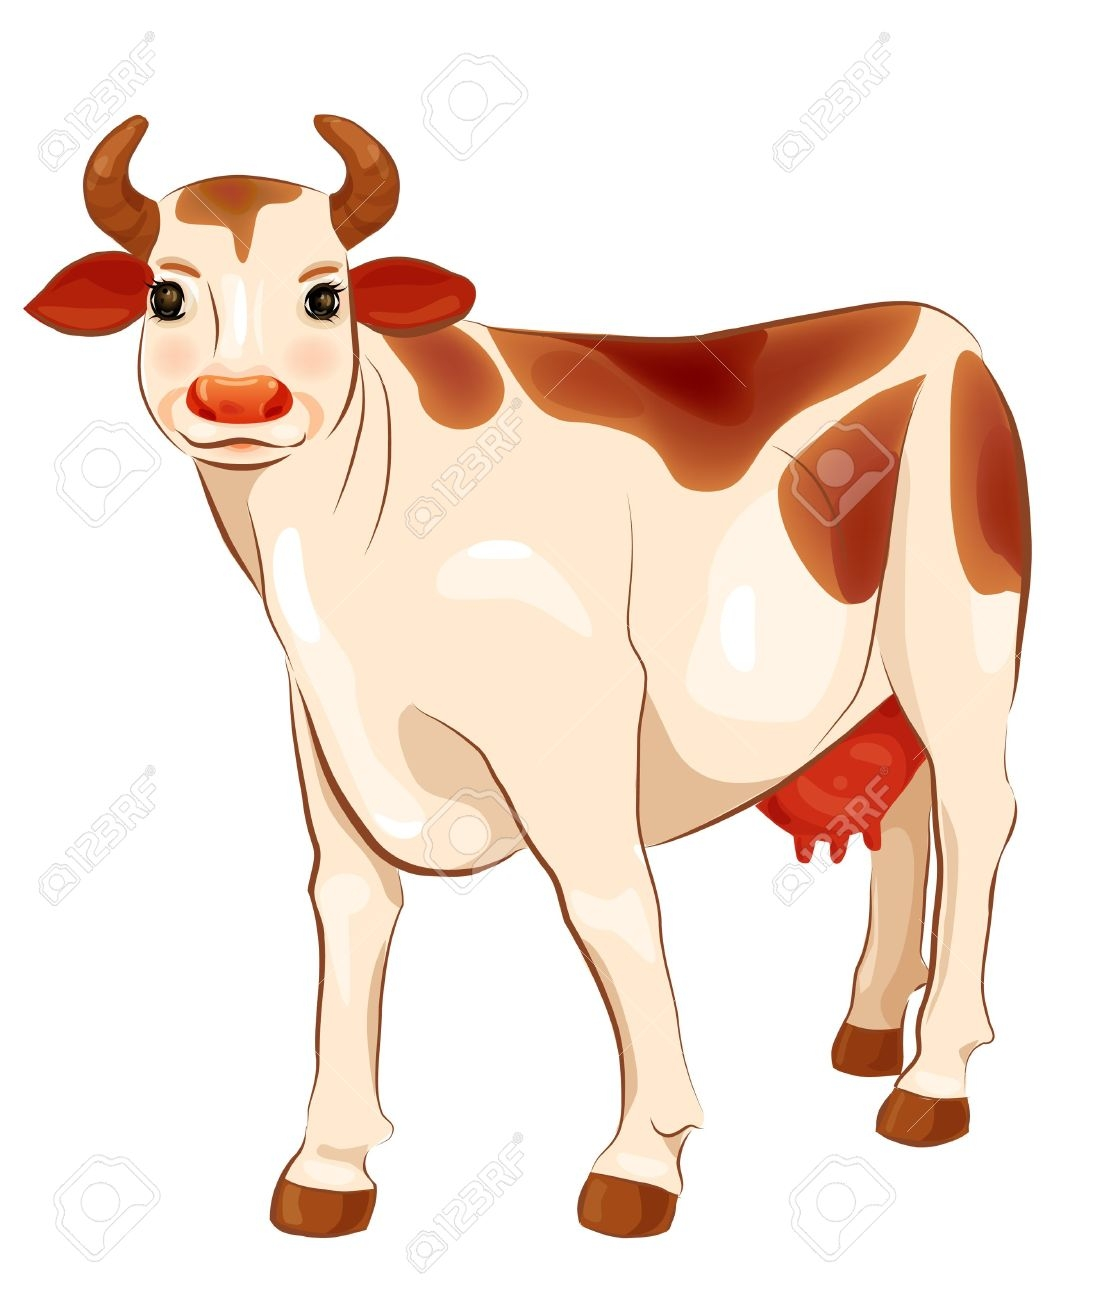 Cattle clipart cow indian.  collection of images